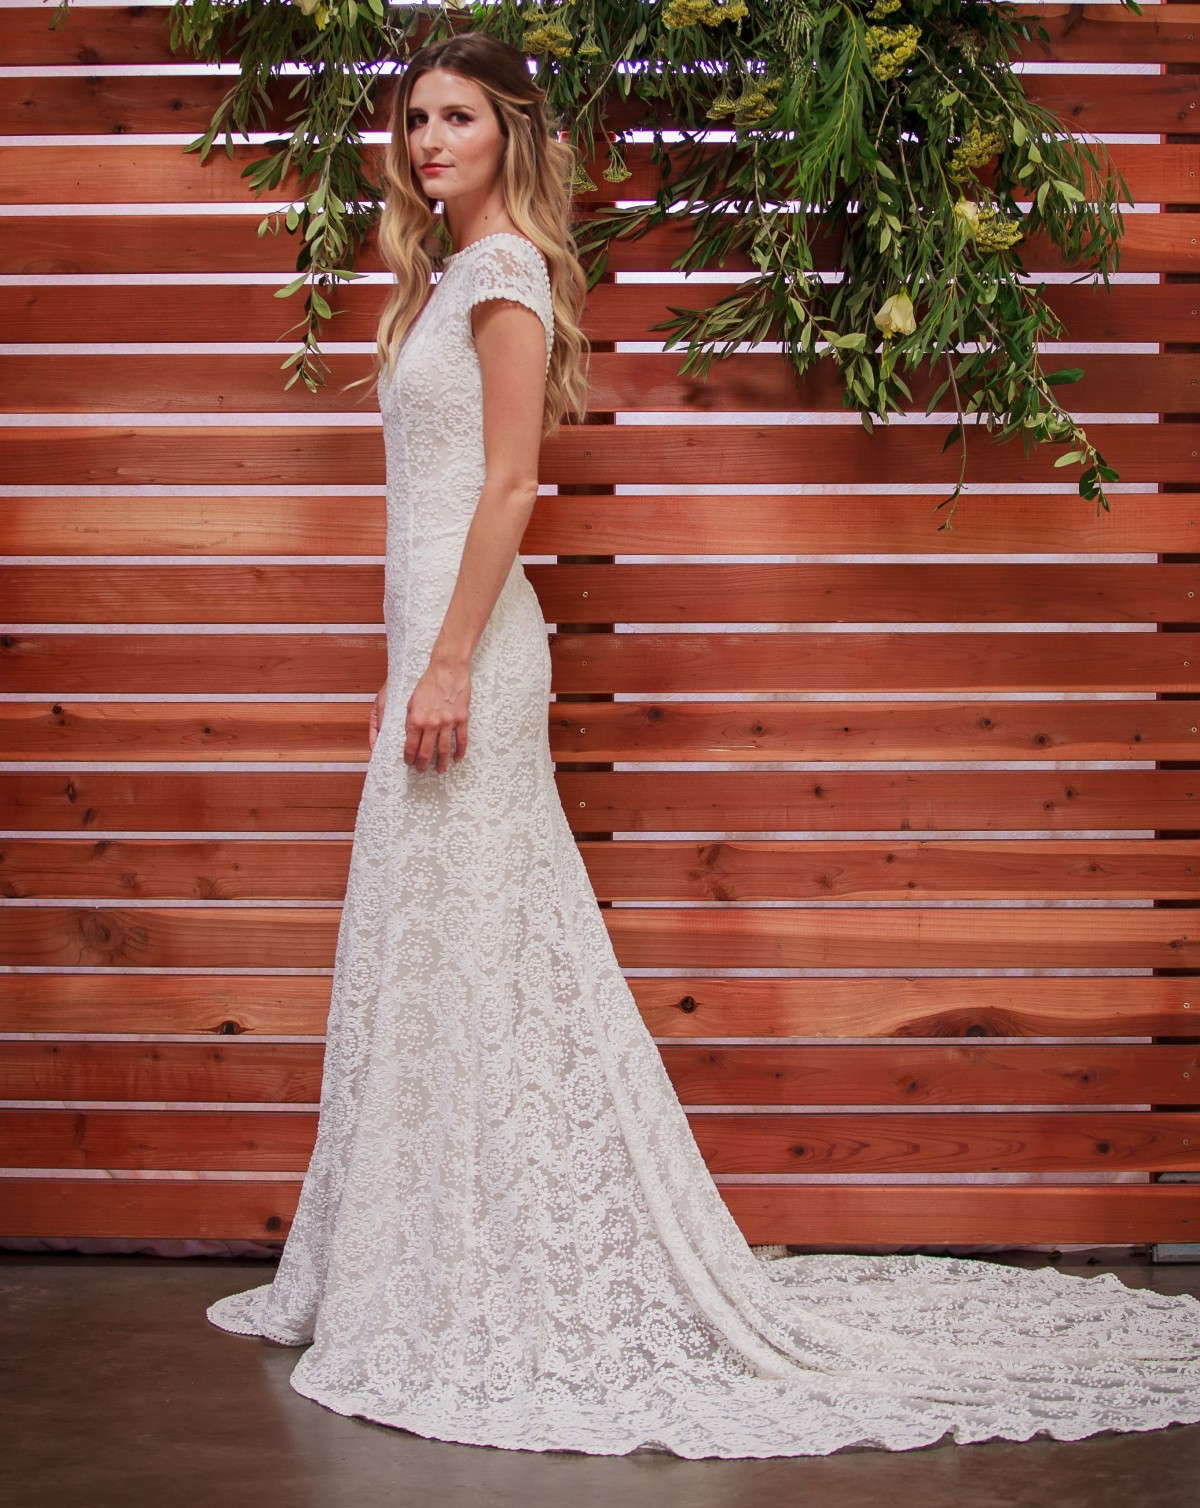 dreamers-and-lovers-simple-romantic-boho-wedding-dress-with-elegant-low-back-and-train